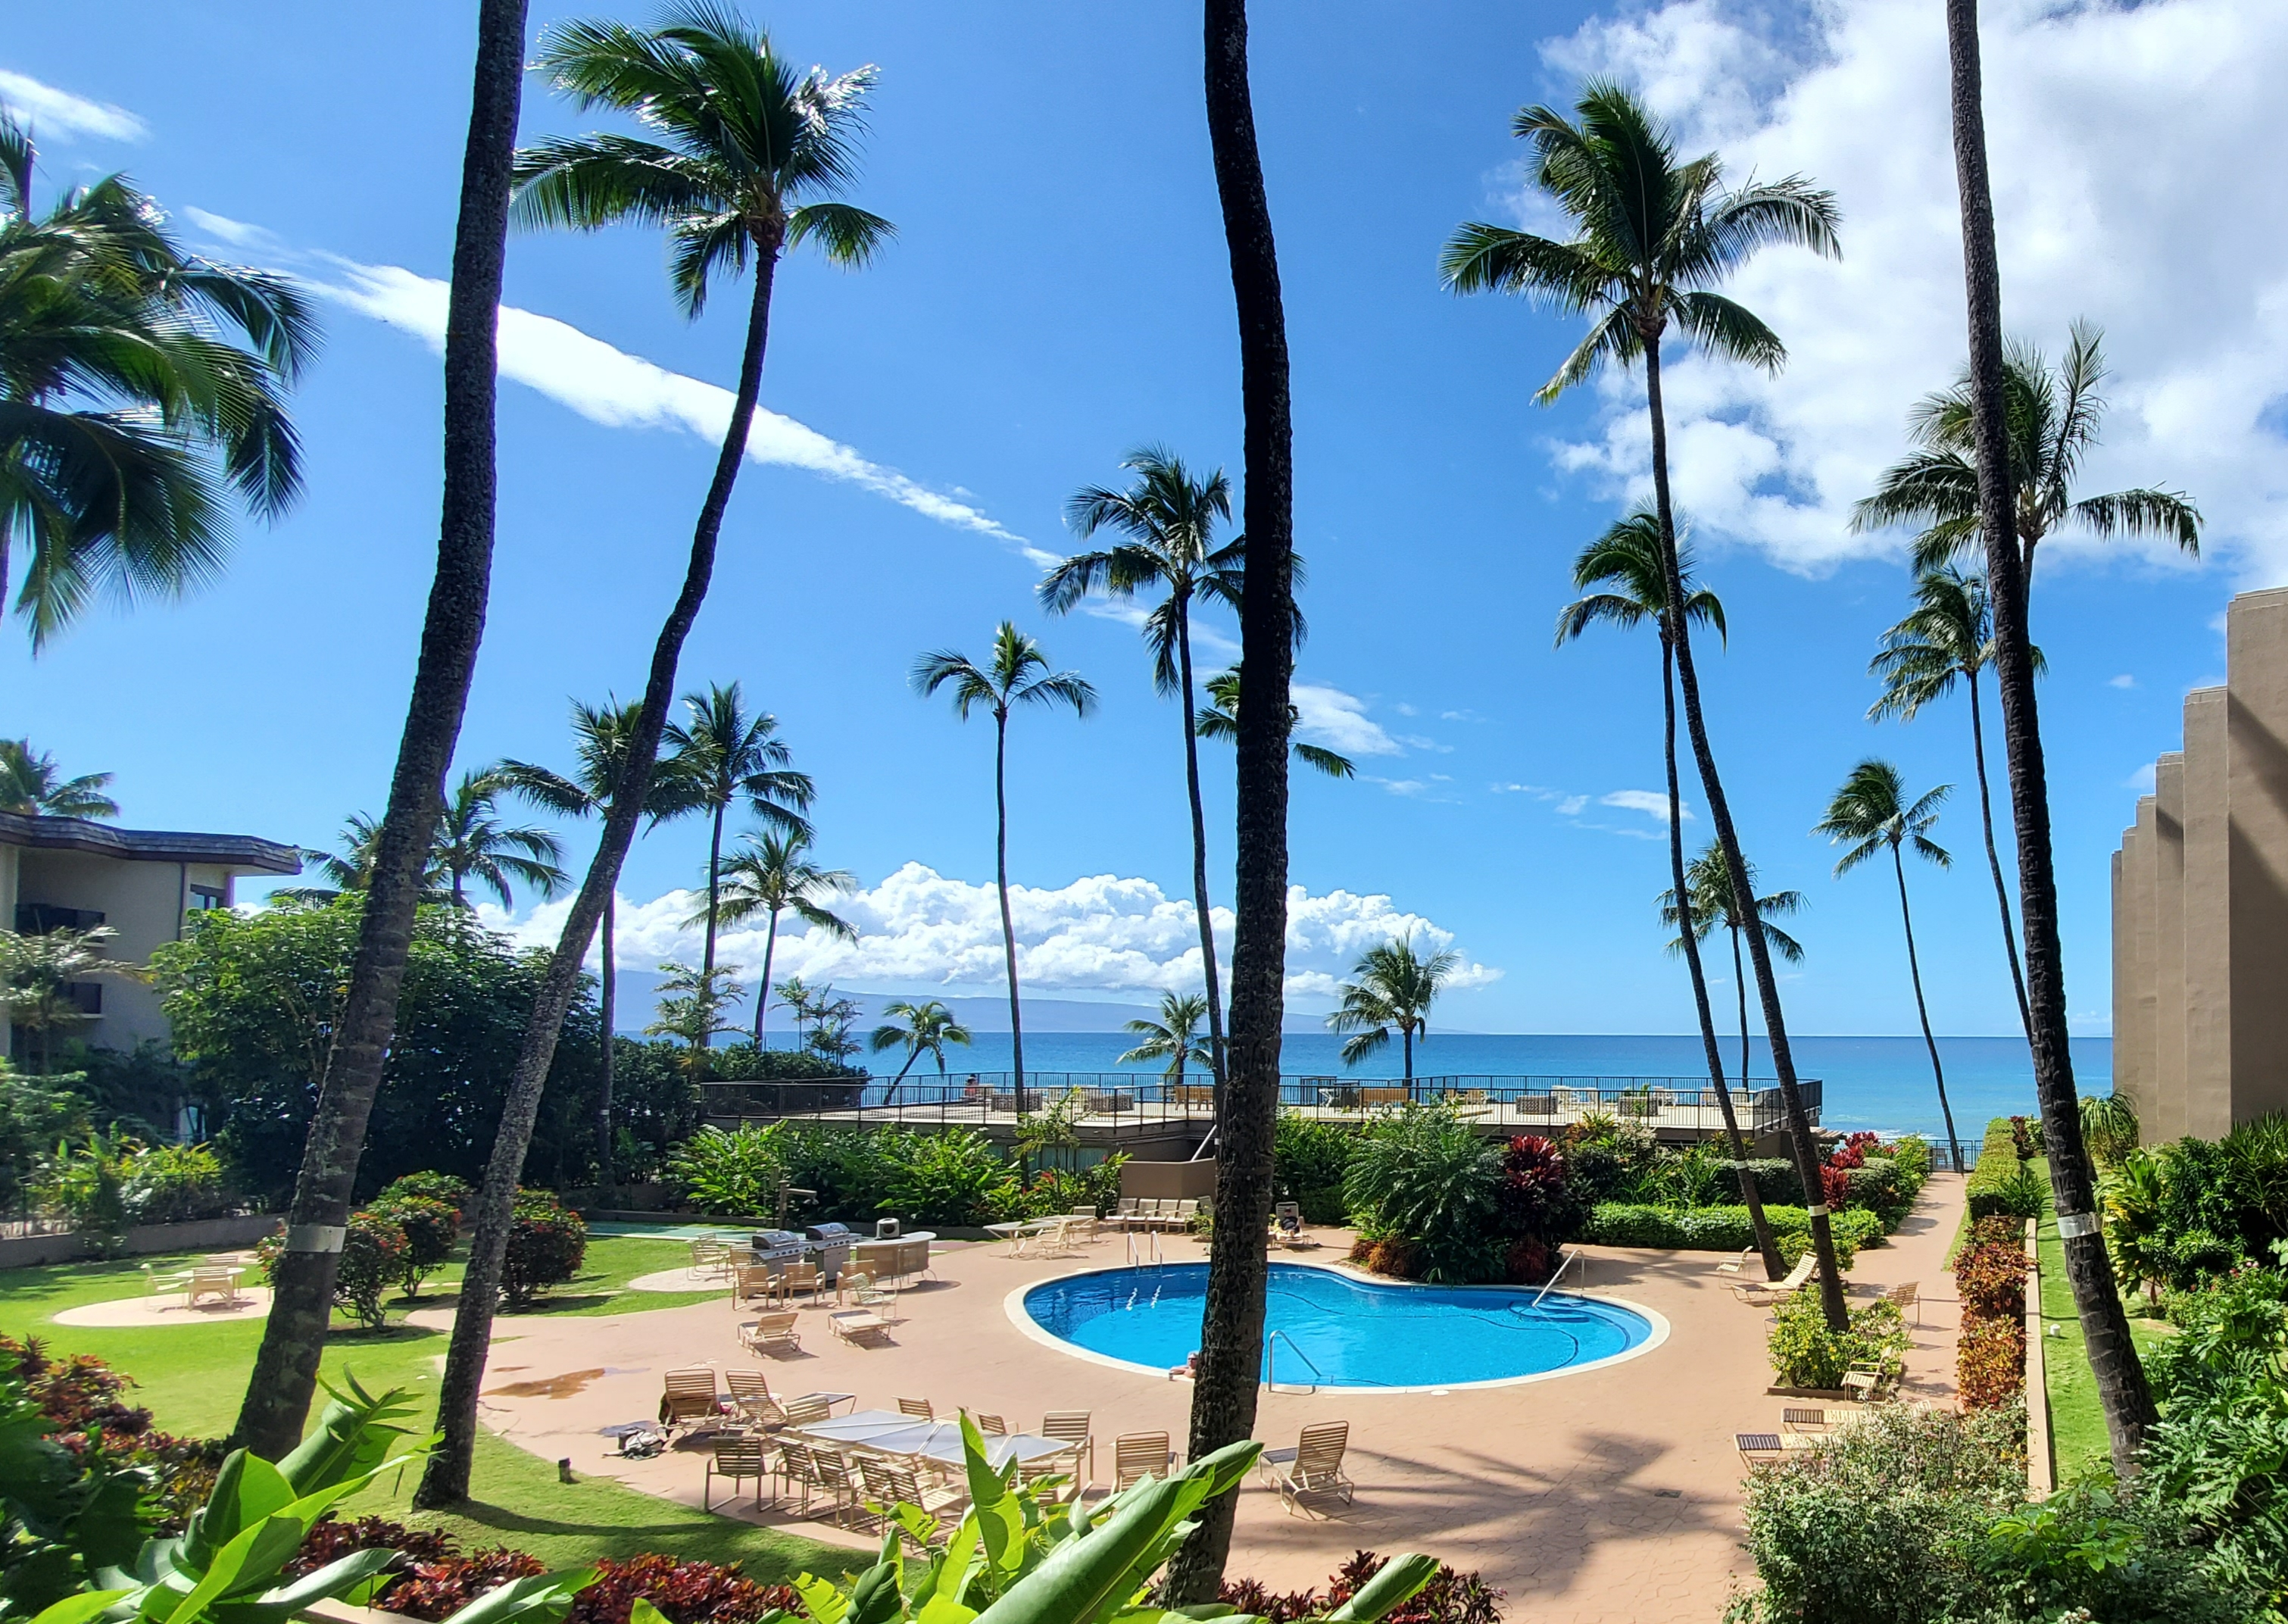 Hale Ono Loa condominium in contract | Maui Hawaii real estate agent Jesse Coffey with Keller Williams Realty